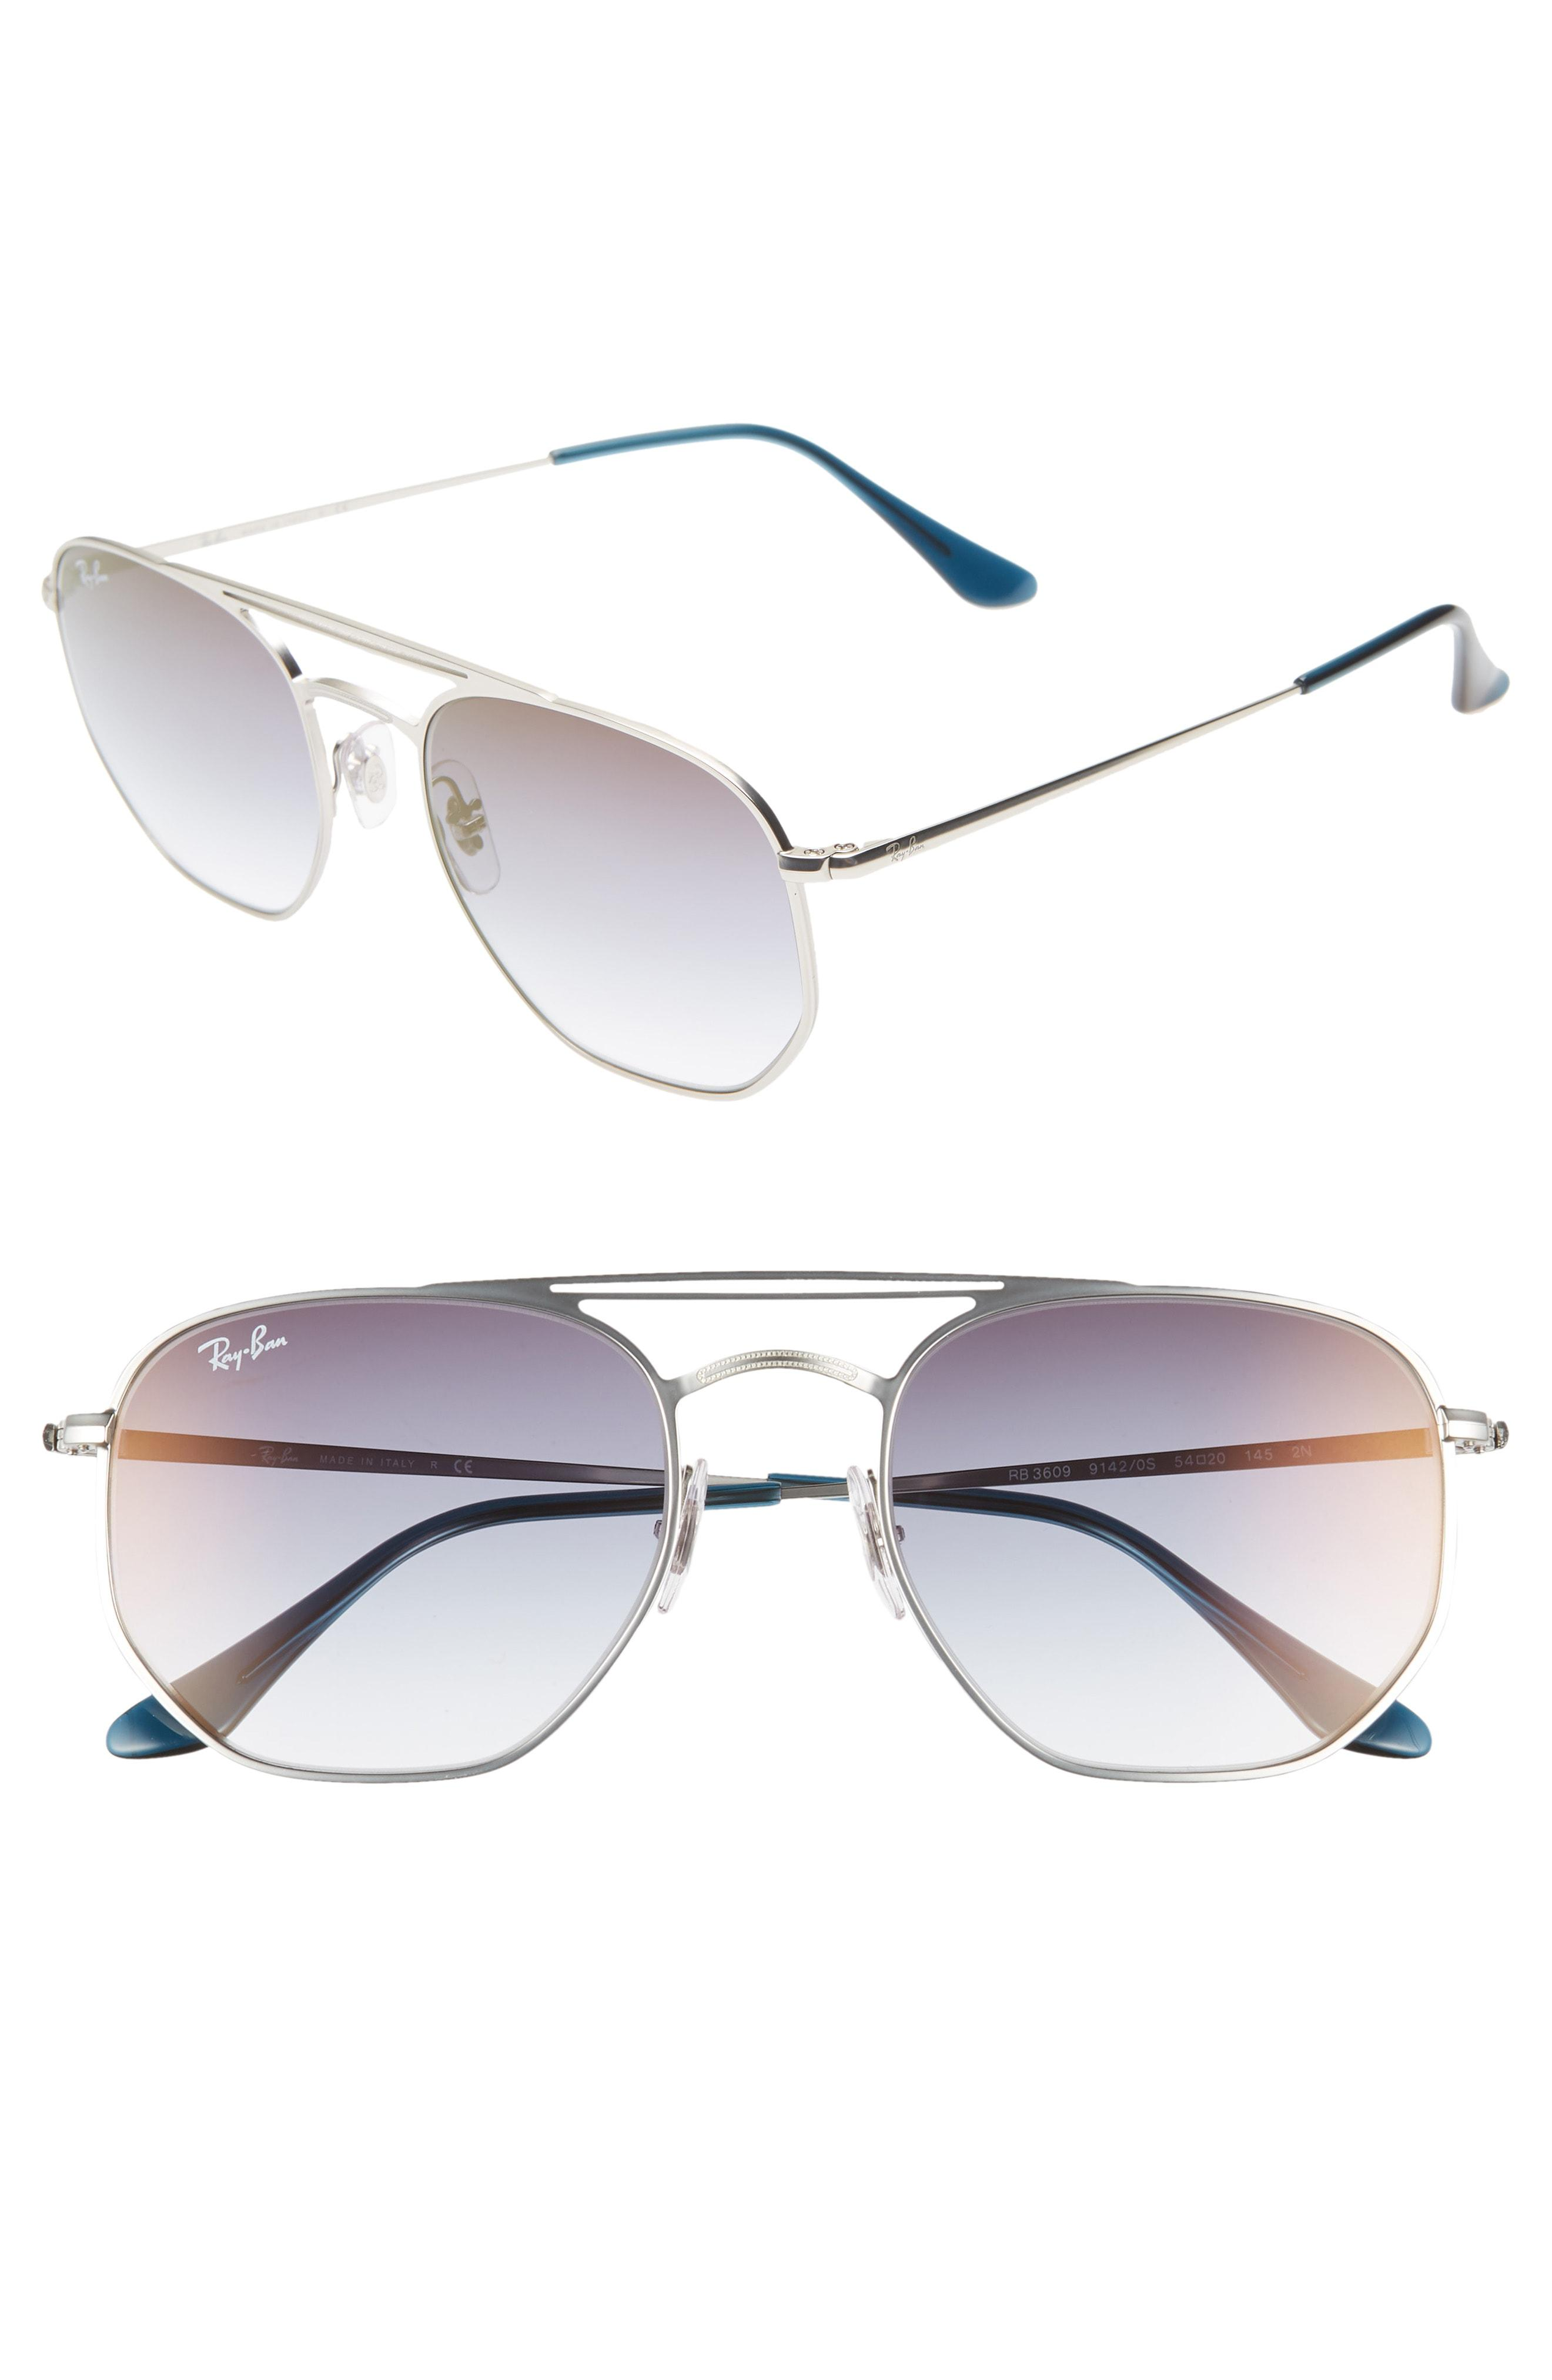 15f09bec9a Ray-Ban. Men s Metallic Navigator 54mm Double Bridge Sunglasses -  Transparent Blue